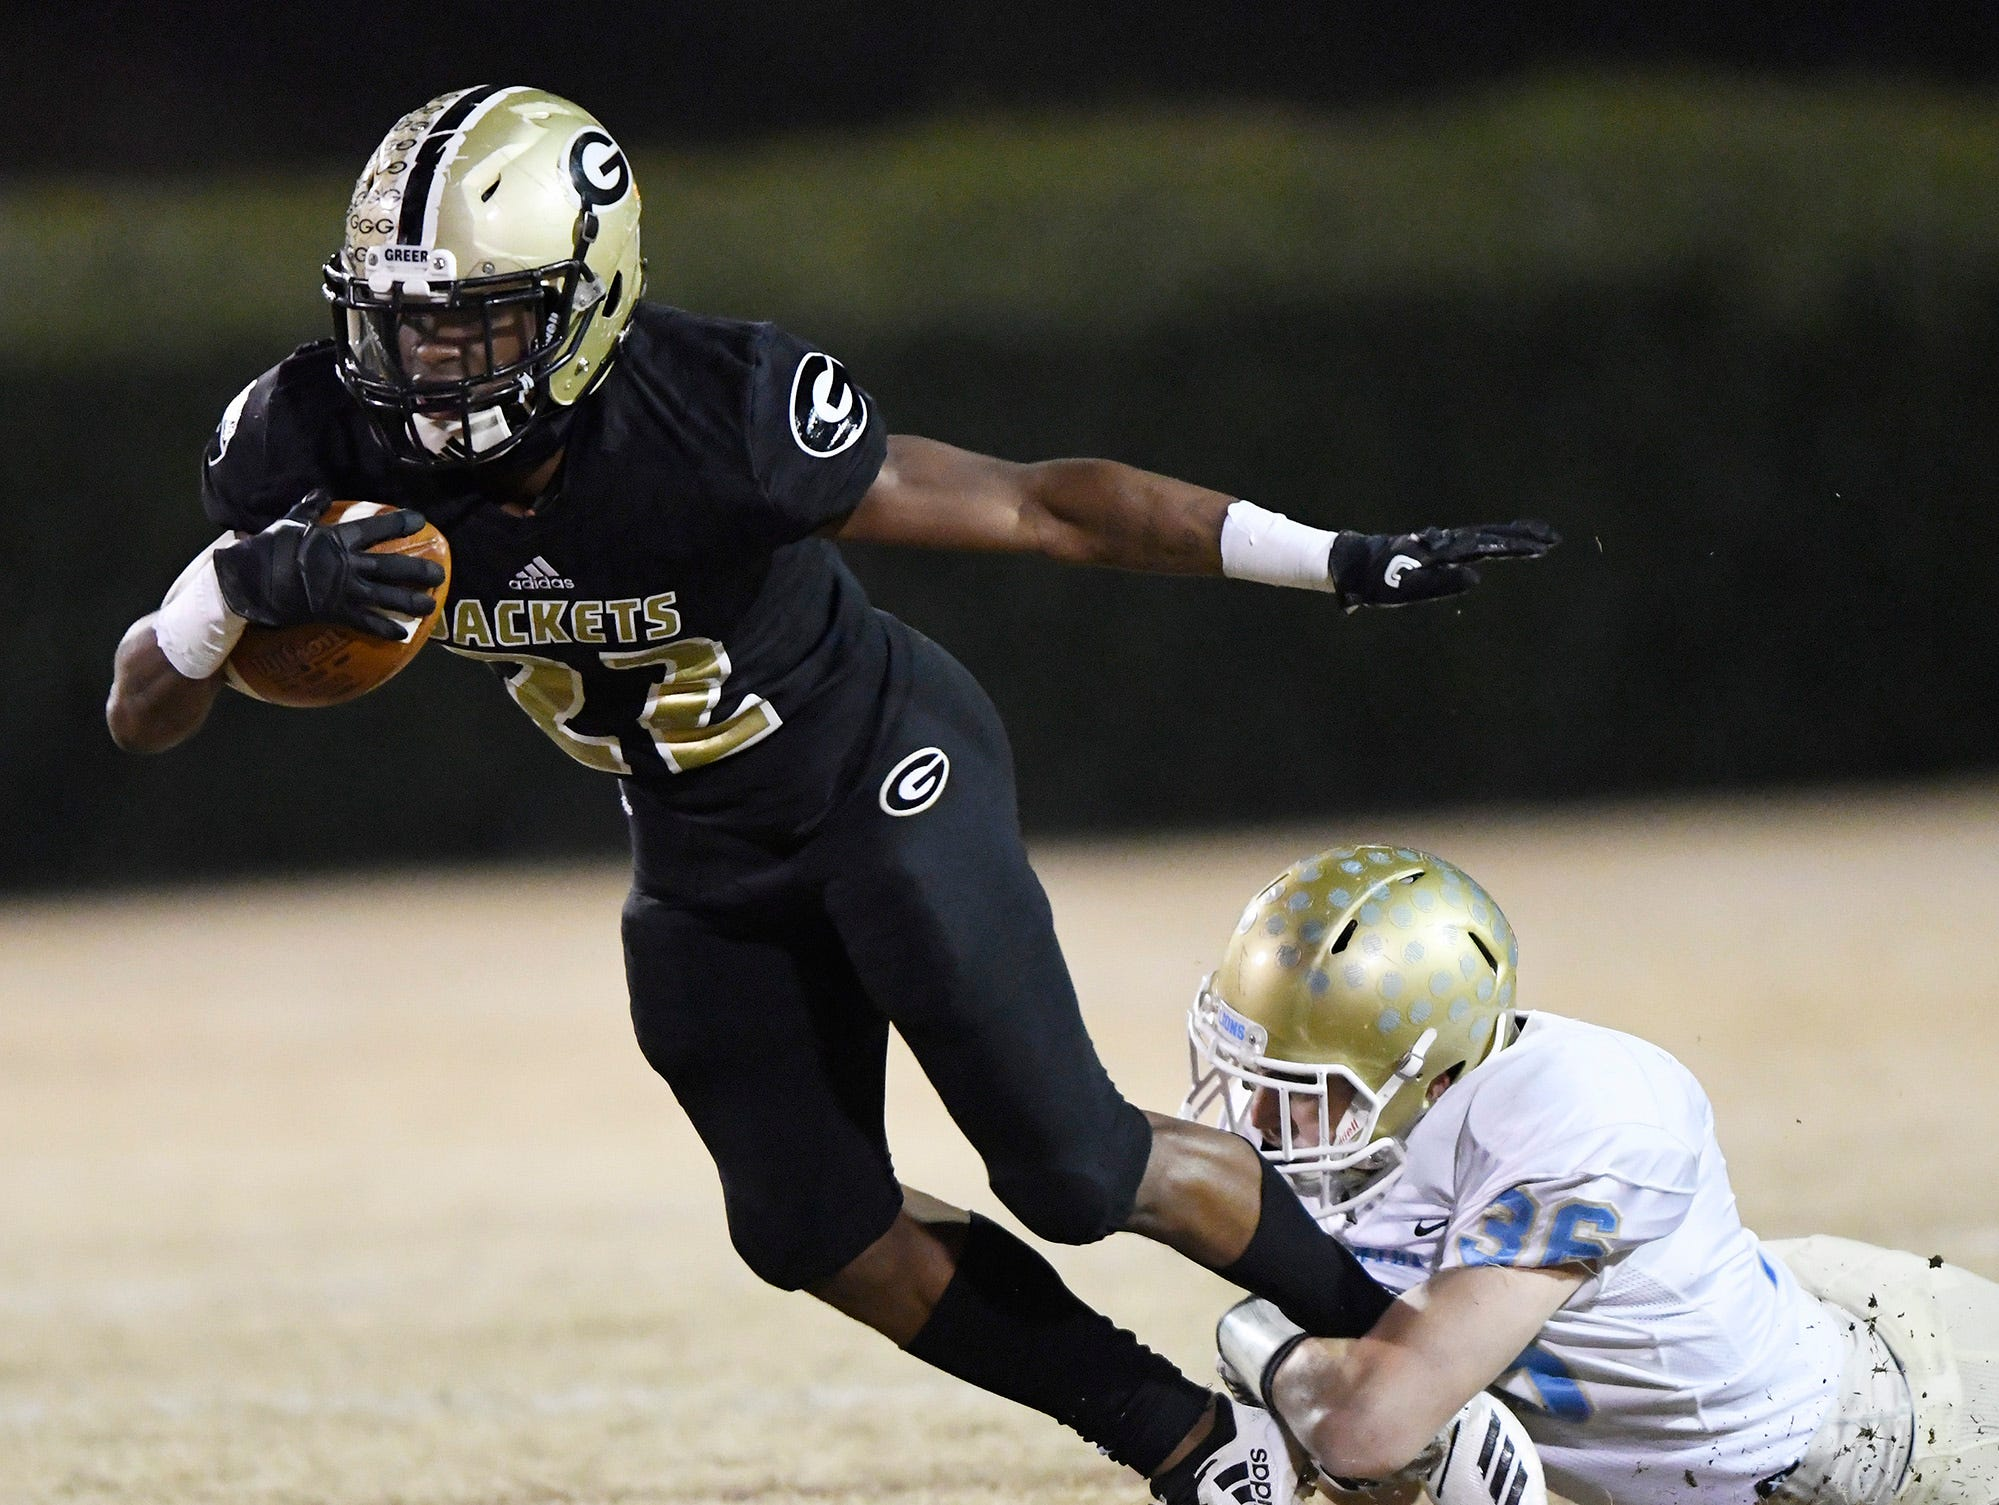 Greer's Dre Williams (22) is slowed by Daniel's David Cote (36) in the class AAAA upstate championship Friday, November 30, 2018 at Greer's Dooley Field.